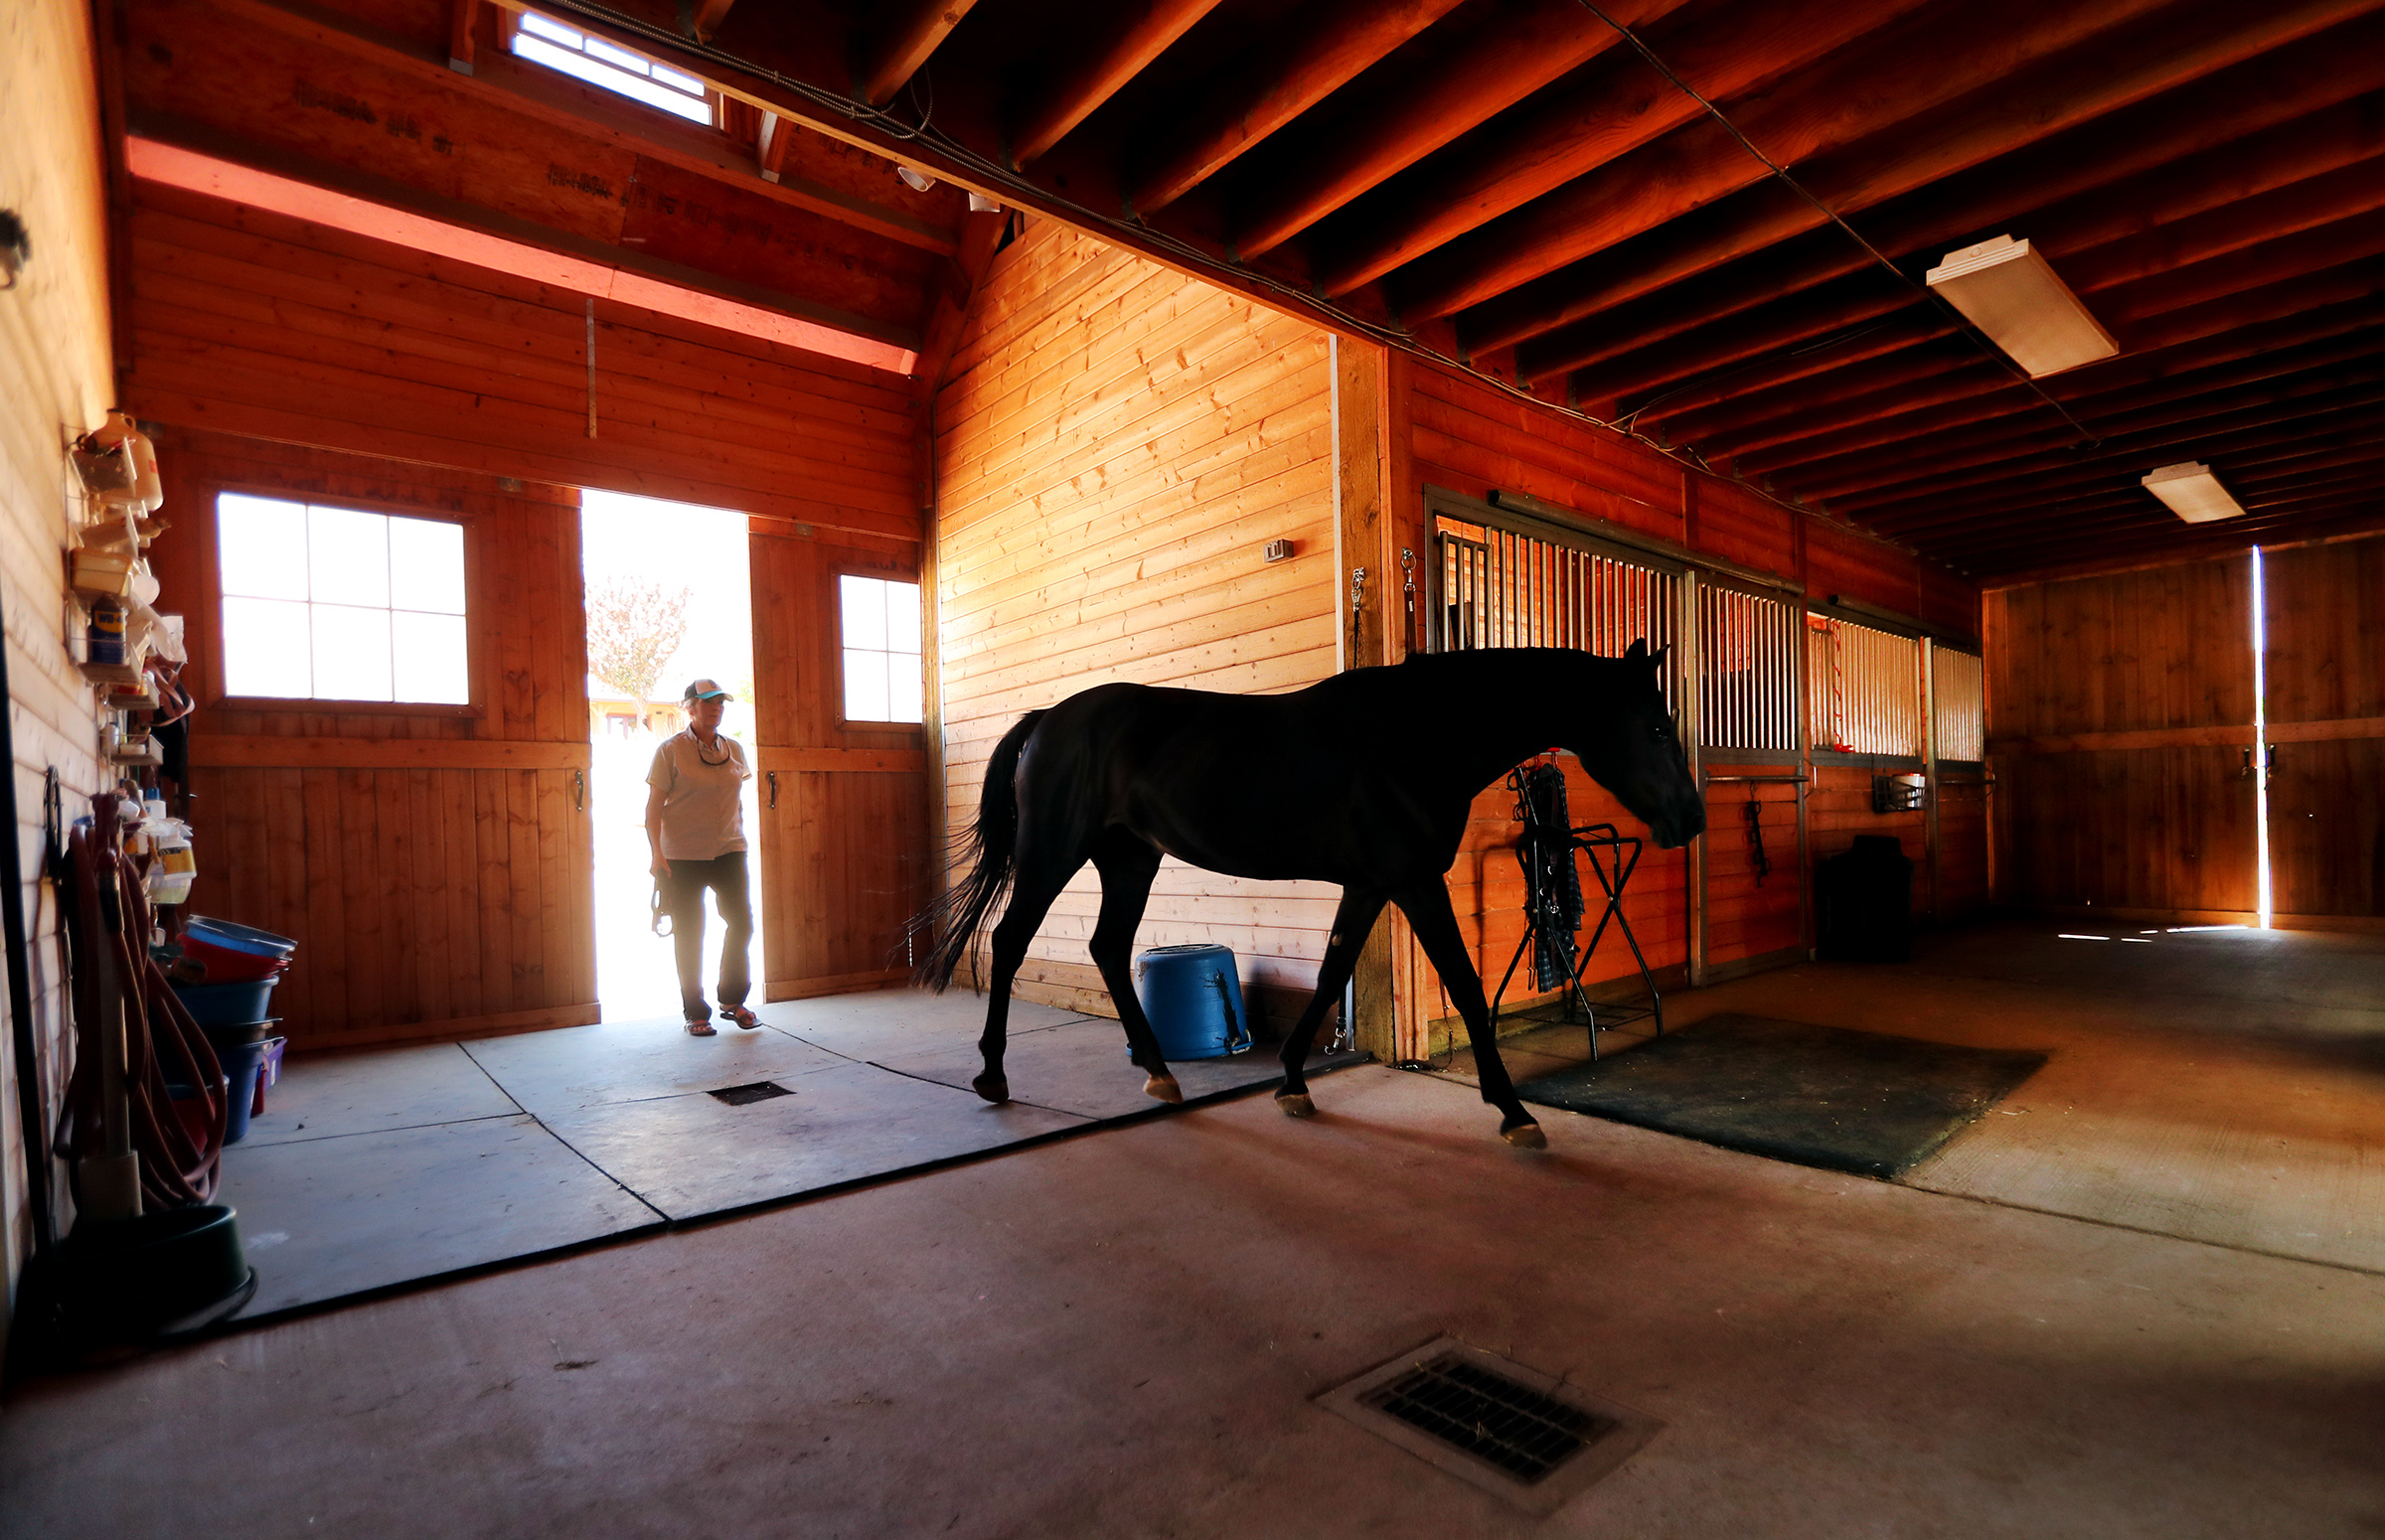 Bethann Martin puts a boarding horse into a stall in her barn in Sandy on Wednesday, Aug. 14, 2019. The Sandy City Council will vote Aug. 20 on a plan to rezone 4.5 acres of land into quarter-acre lots. The proposed rezone would also not allow farm animals in an area that has historically been equestrian friendly. Martin owns two acres of land about 11/2 miles northeast of the proposed rezone.